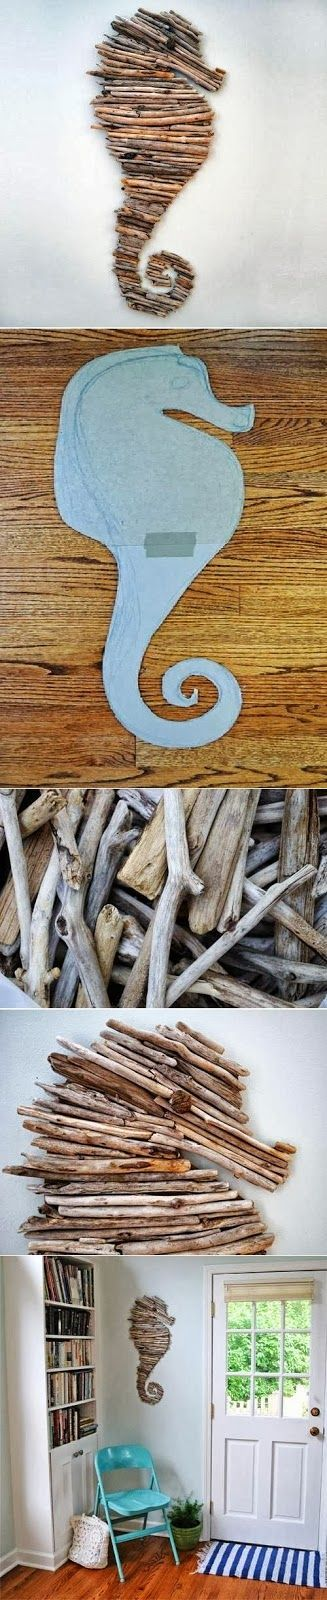 DIY: Tree Branch Seahorse Could use this idea with any shape, or as a monogram with initial...driftwood...: